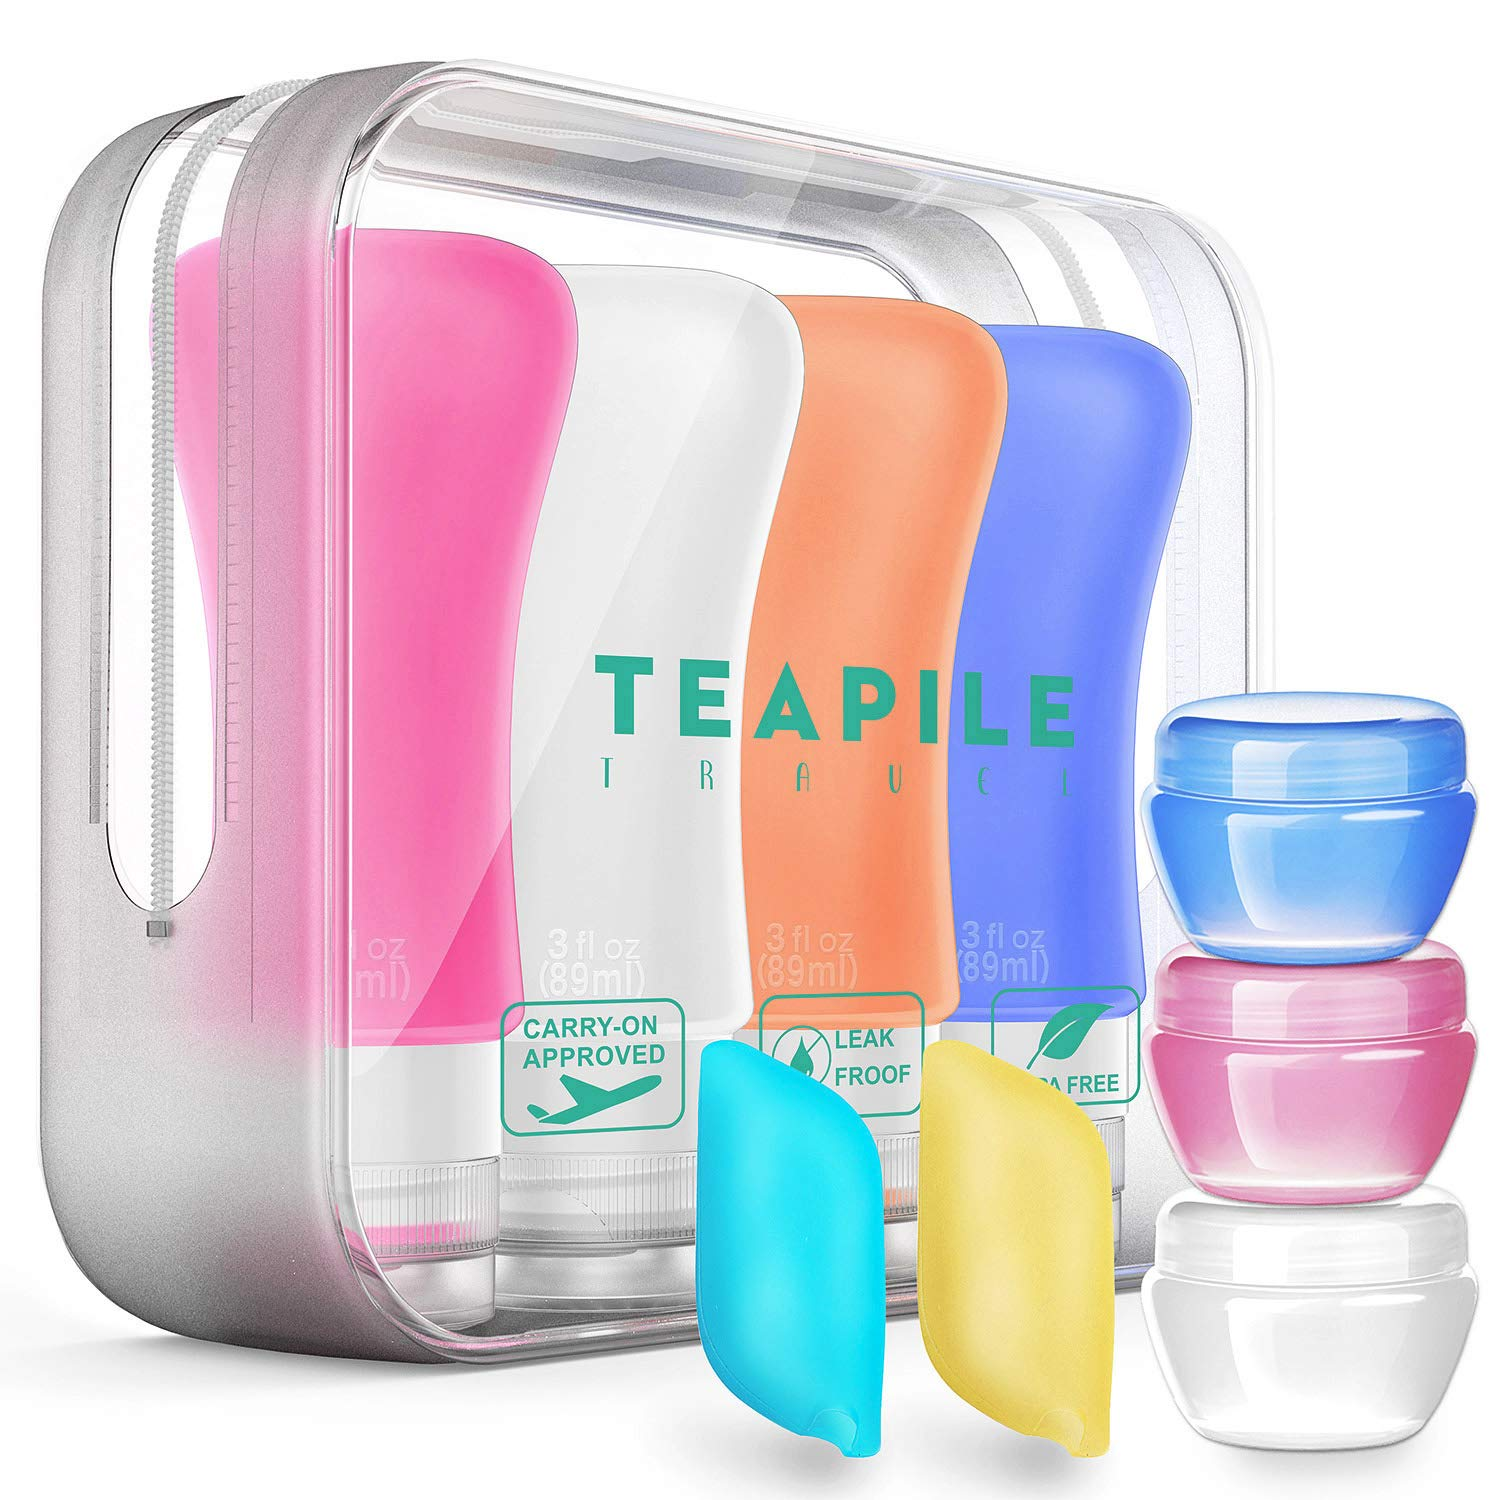 9 Pack Travel Bottles TSA Approved Containers, 3oz Leak Proof Travel Accessories Toiletries,Travel Shampoo And Conditioner Bottles,Perfect for Business or Personal Travel, Fun Outdoors by Teapile